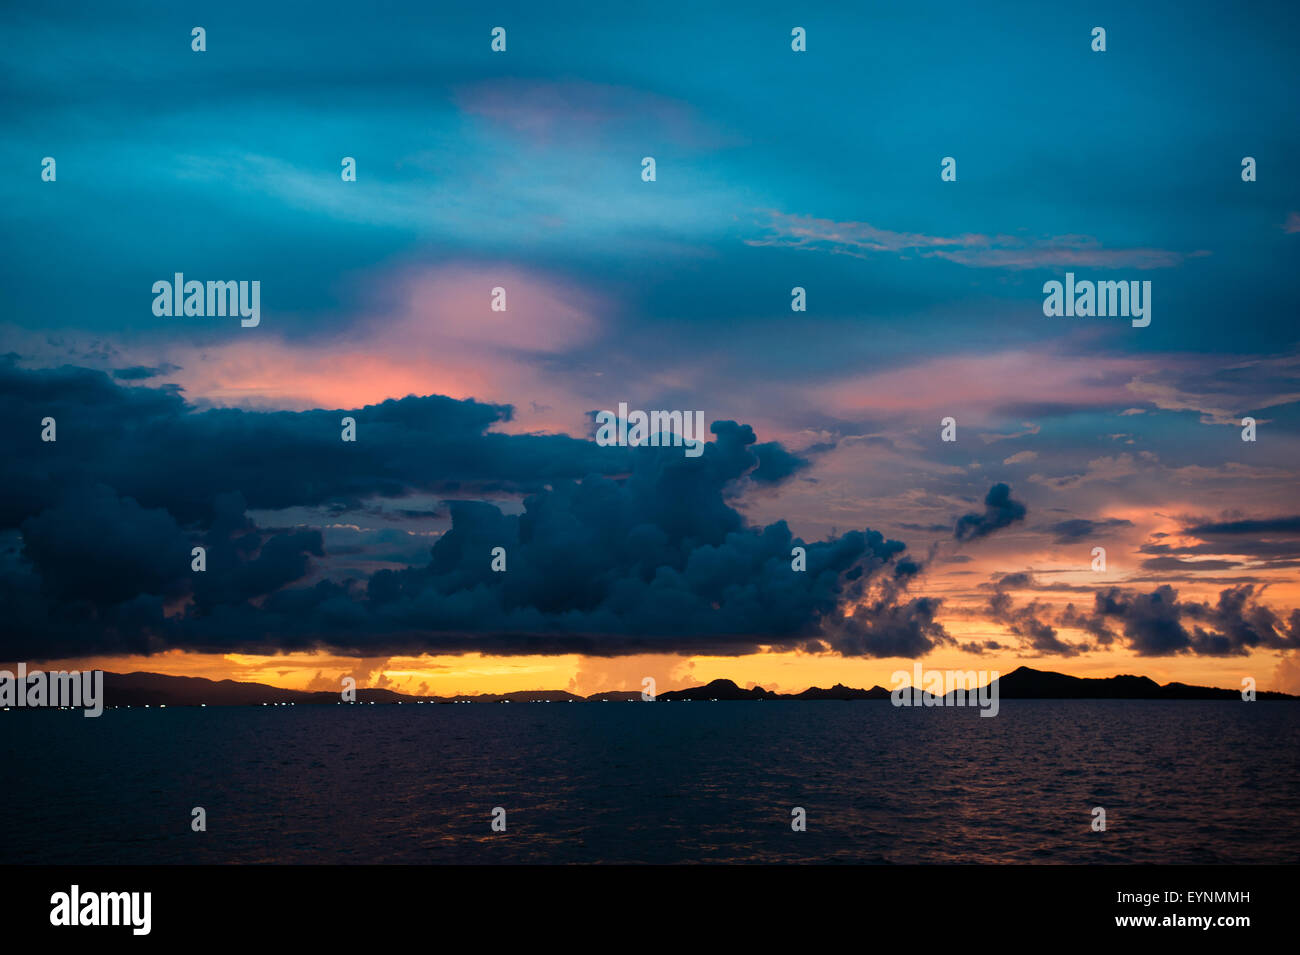 A dramatic sunset with mountains and clouds in Alor island nearby Flores, reach of colors and contrast photographed - Stock Image